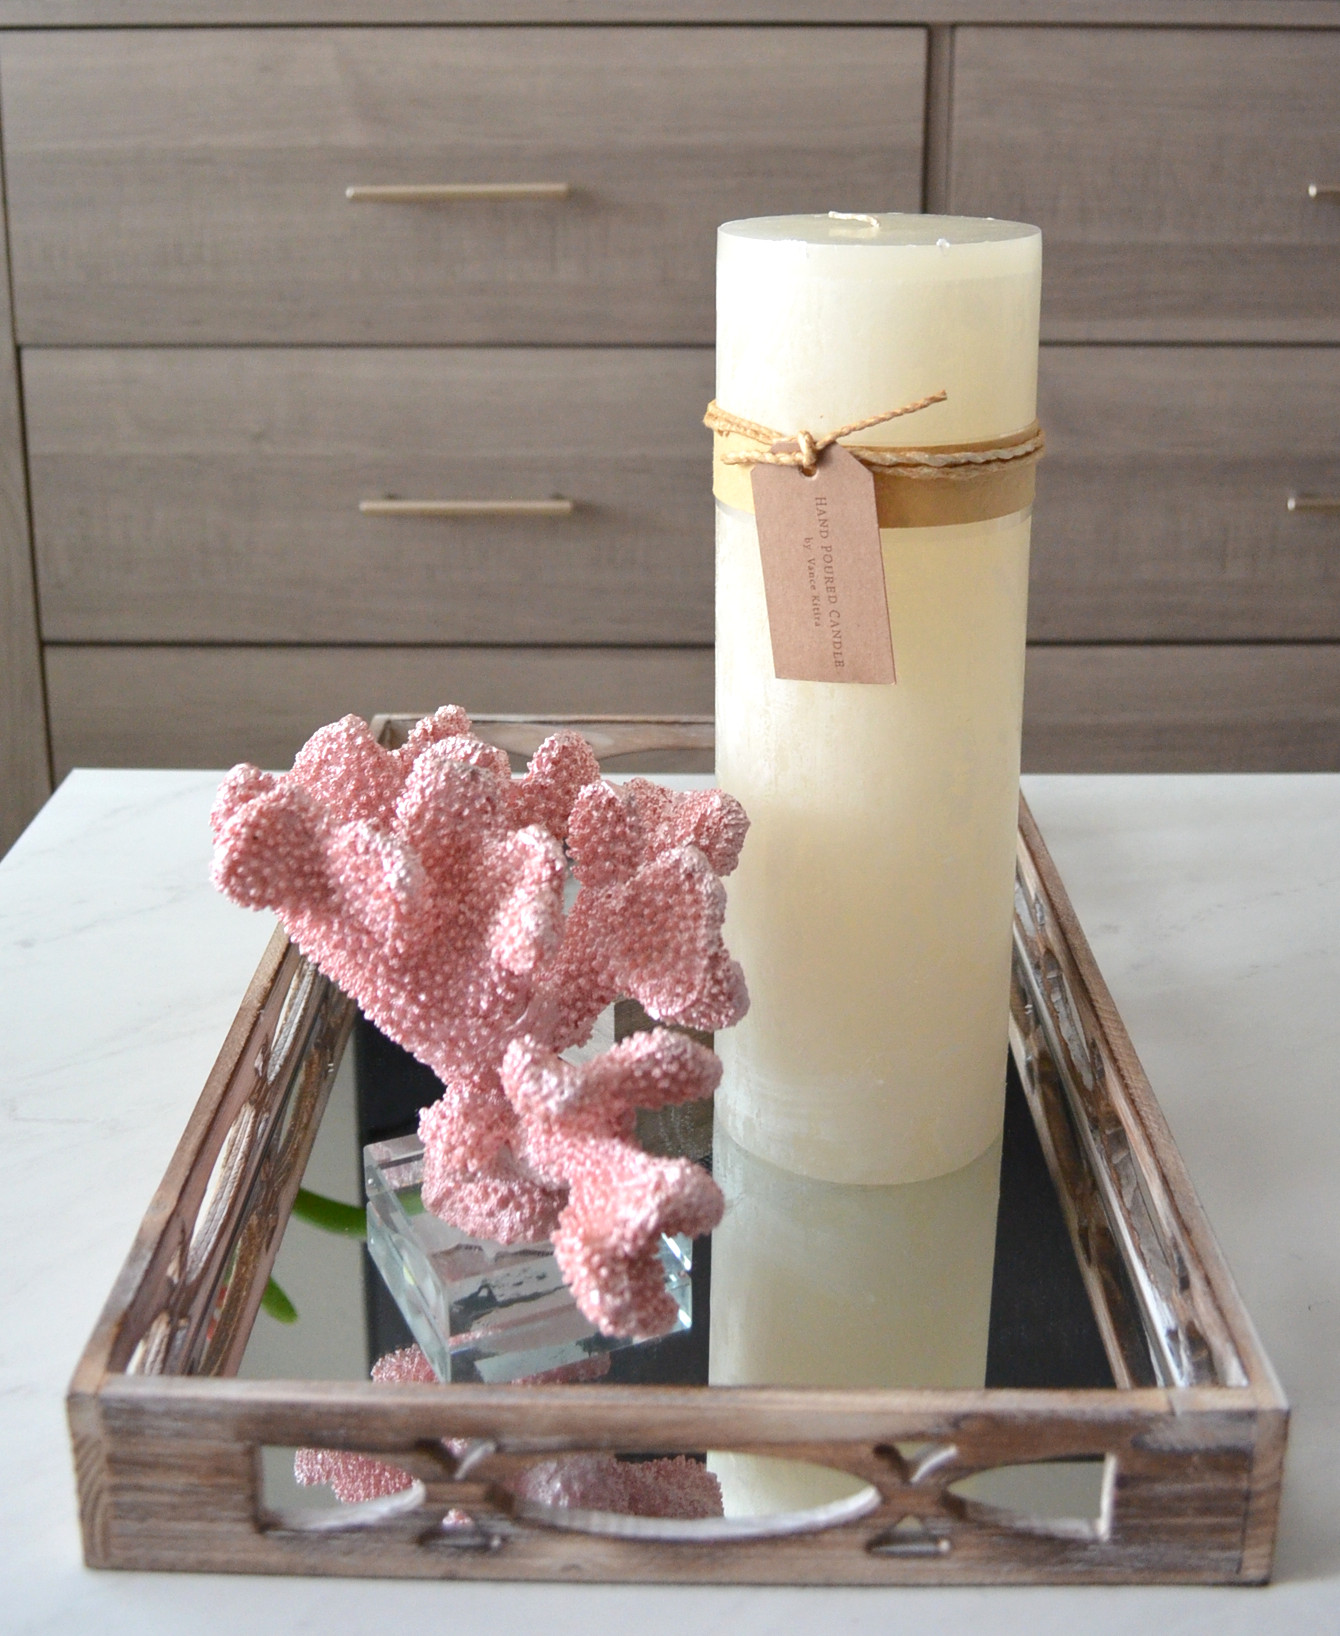 coffee table arrangement with candle mirror tray coral figurine